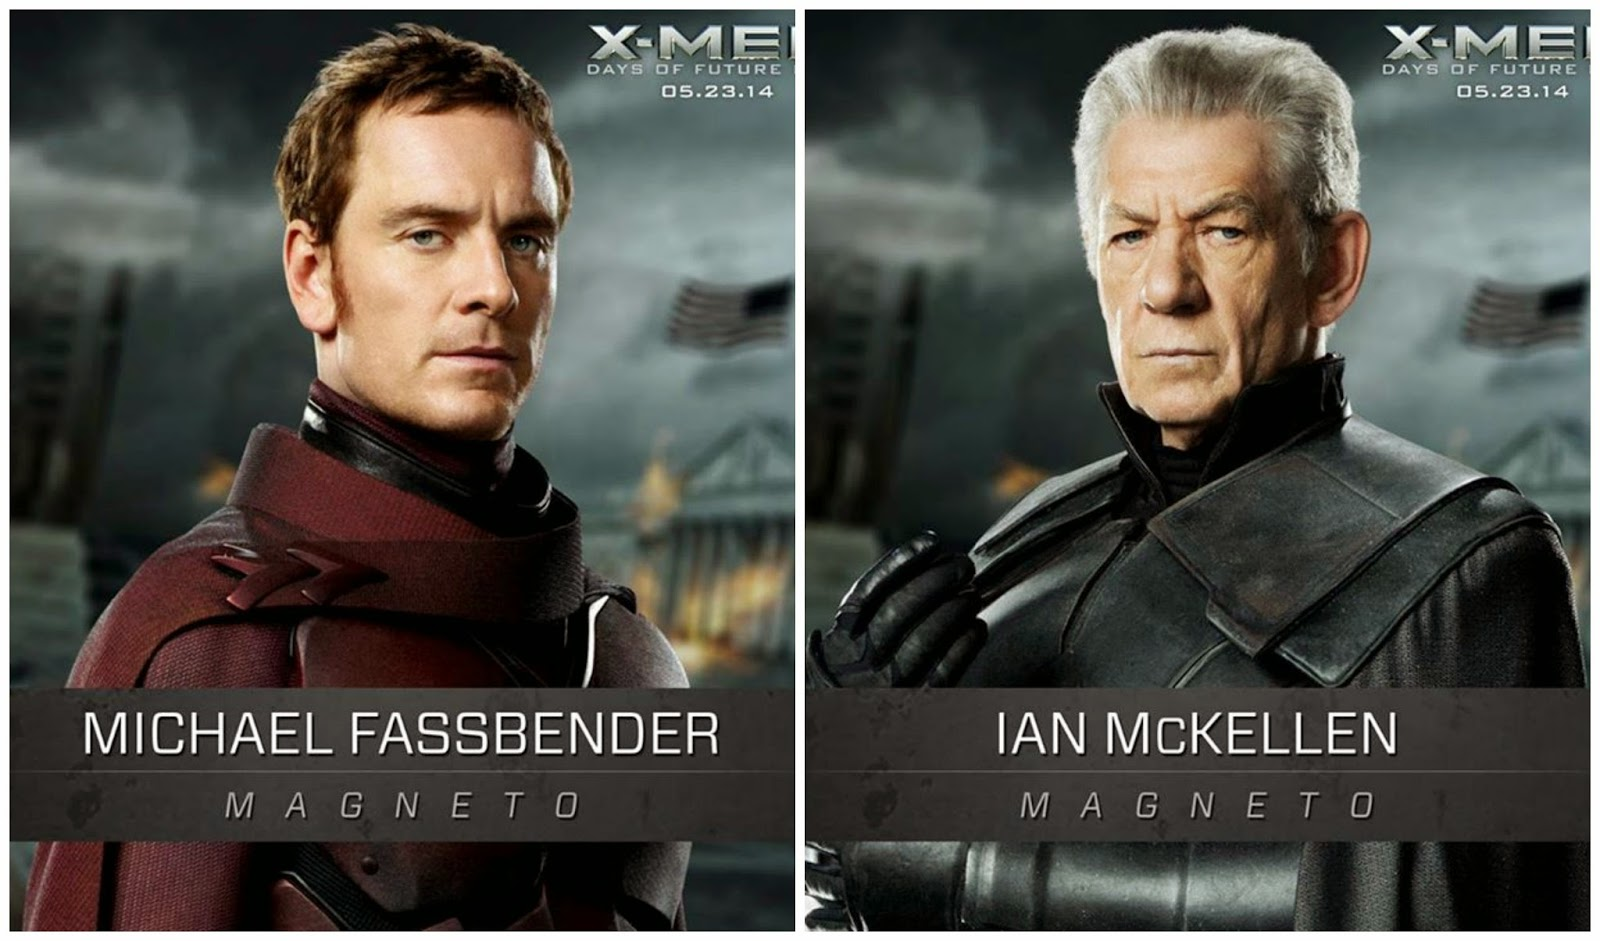 Michael Fassbender and Ian McKellen as younger and older Magneto Erik Lehnsherr in X Men Days of Future Past